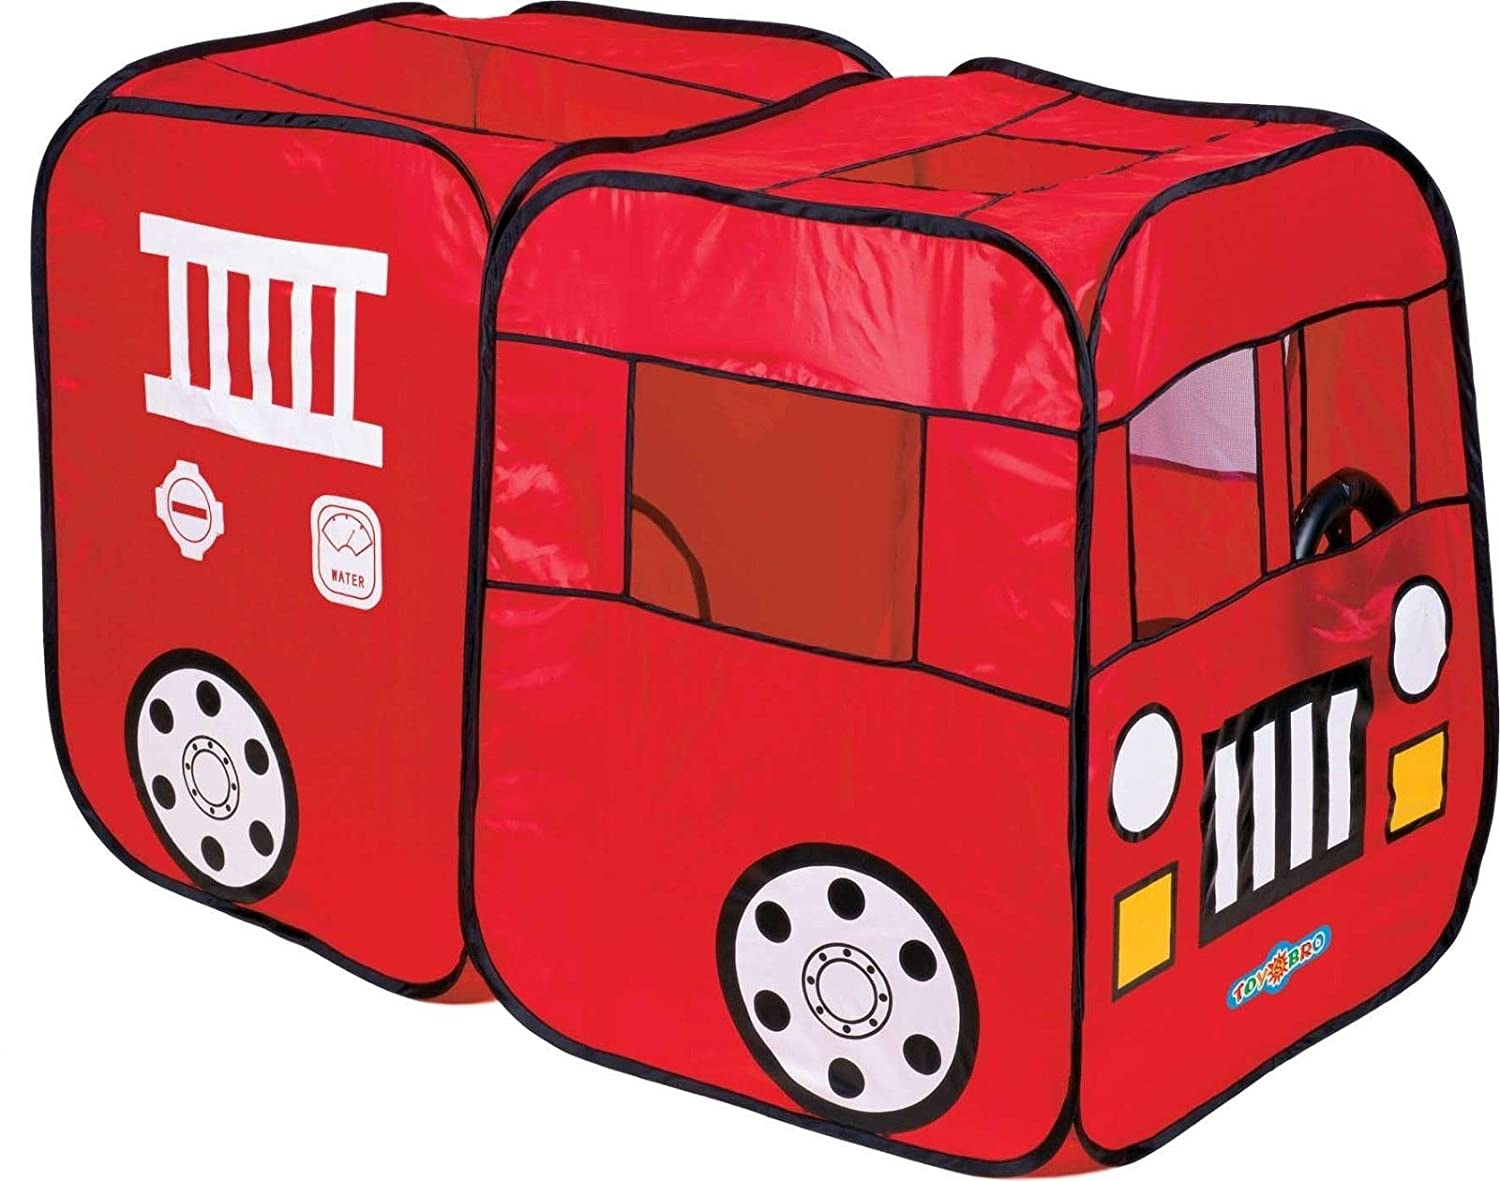 Amazon.com: Fire Truck Engine Play Tent Red Playtent House Indoor ...